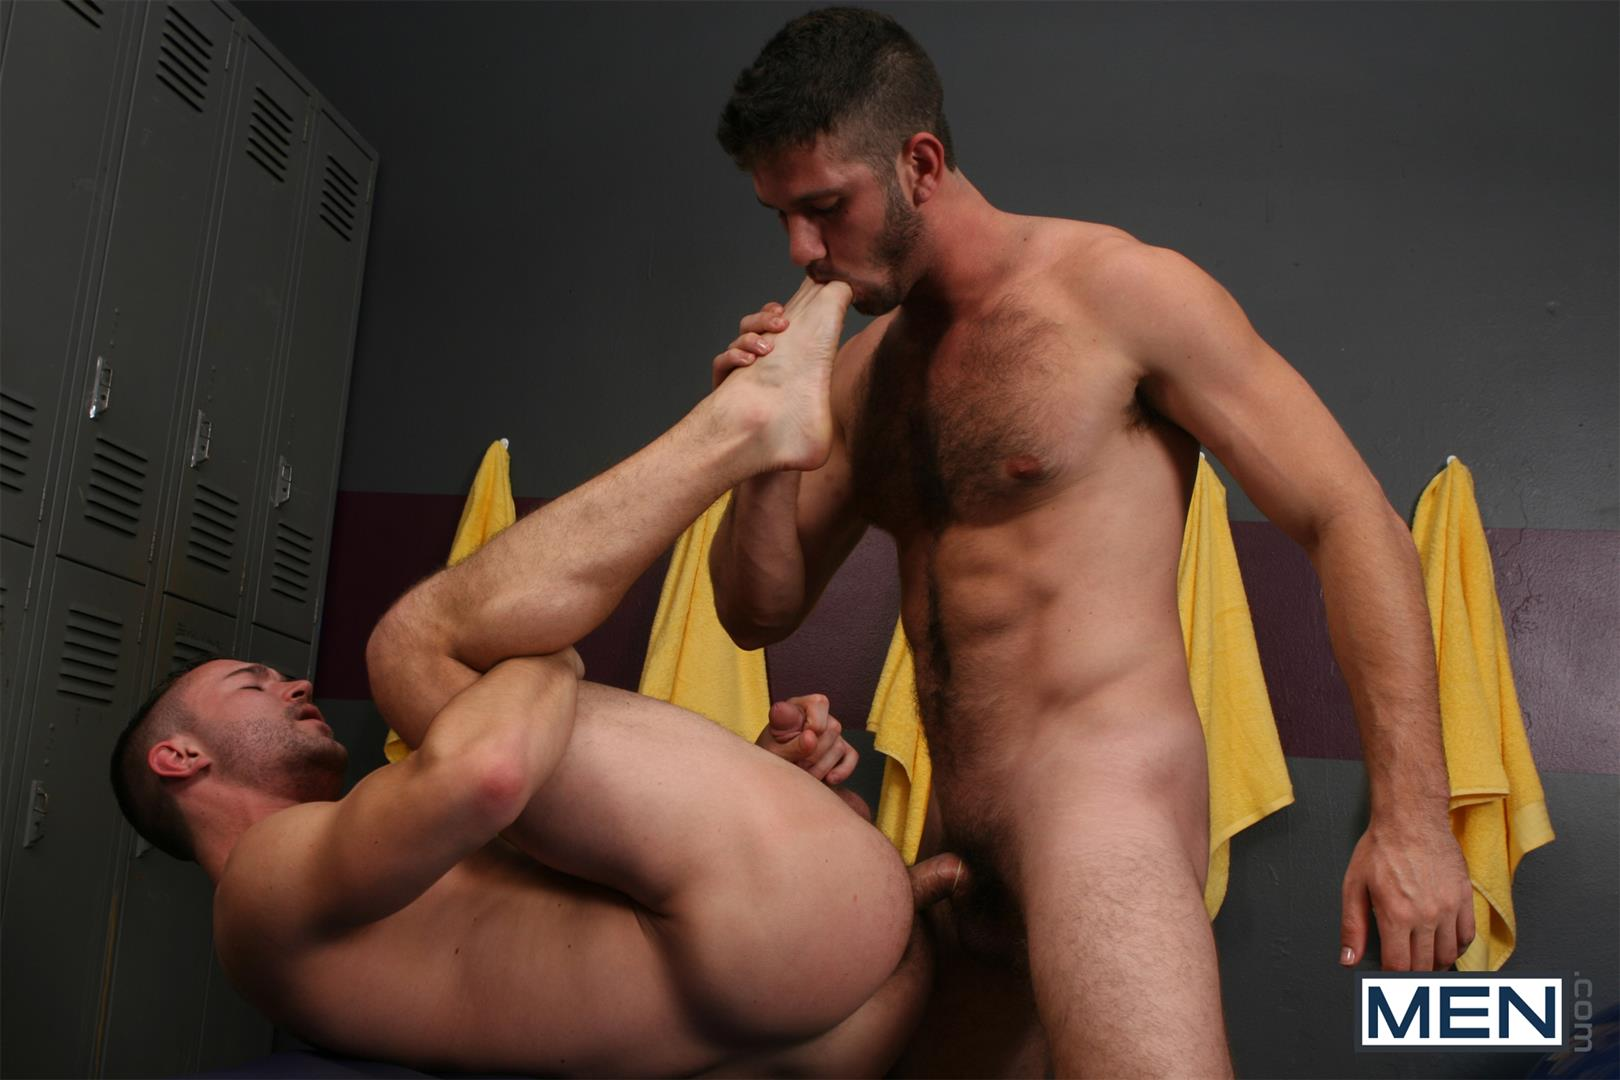 Gay Locker Room Porn Videos